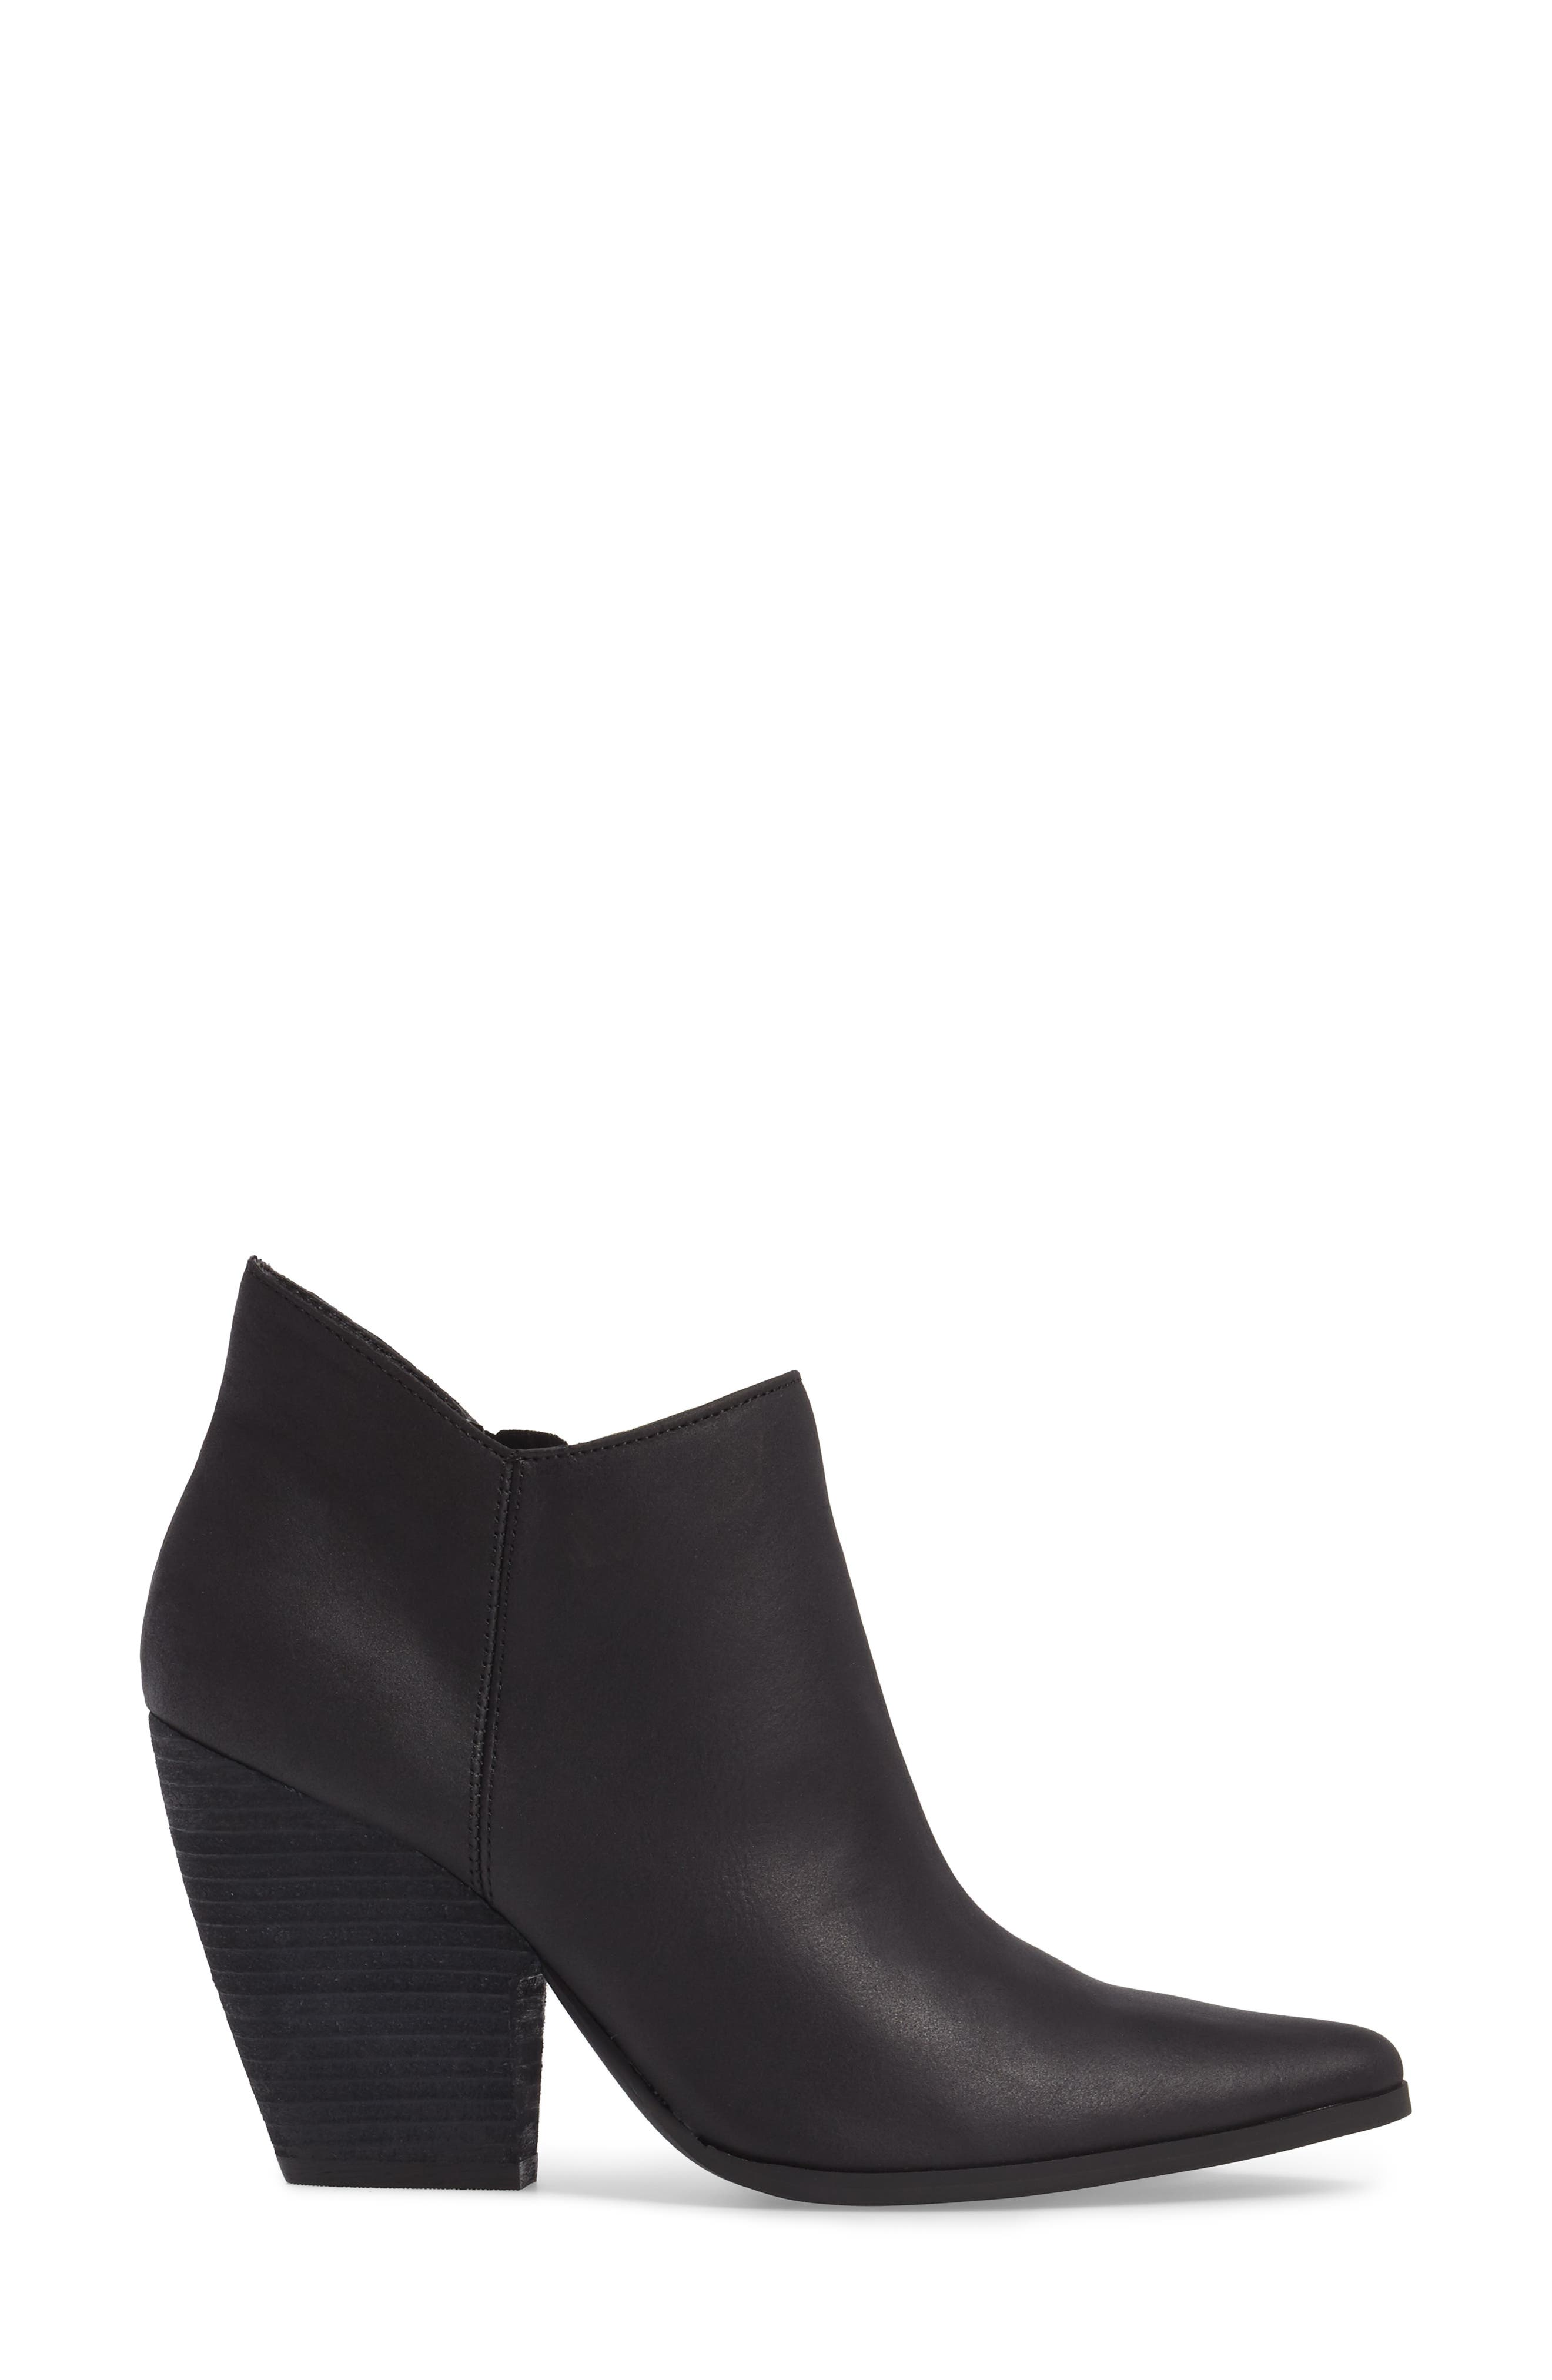 Natasha Bootie,                             Alternate thumbnail 3, color,                             Black